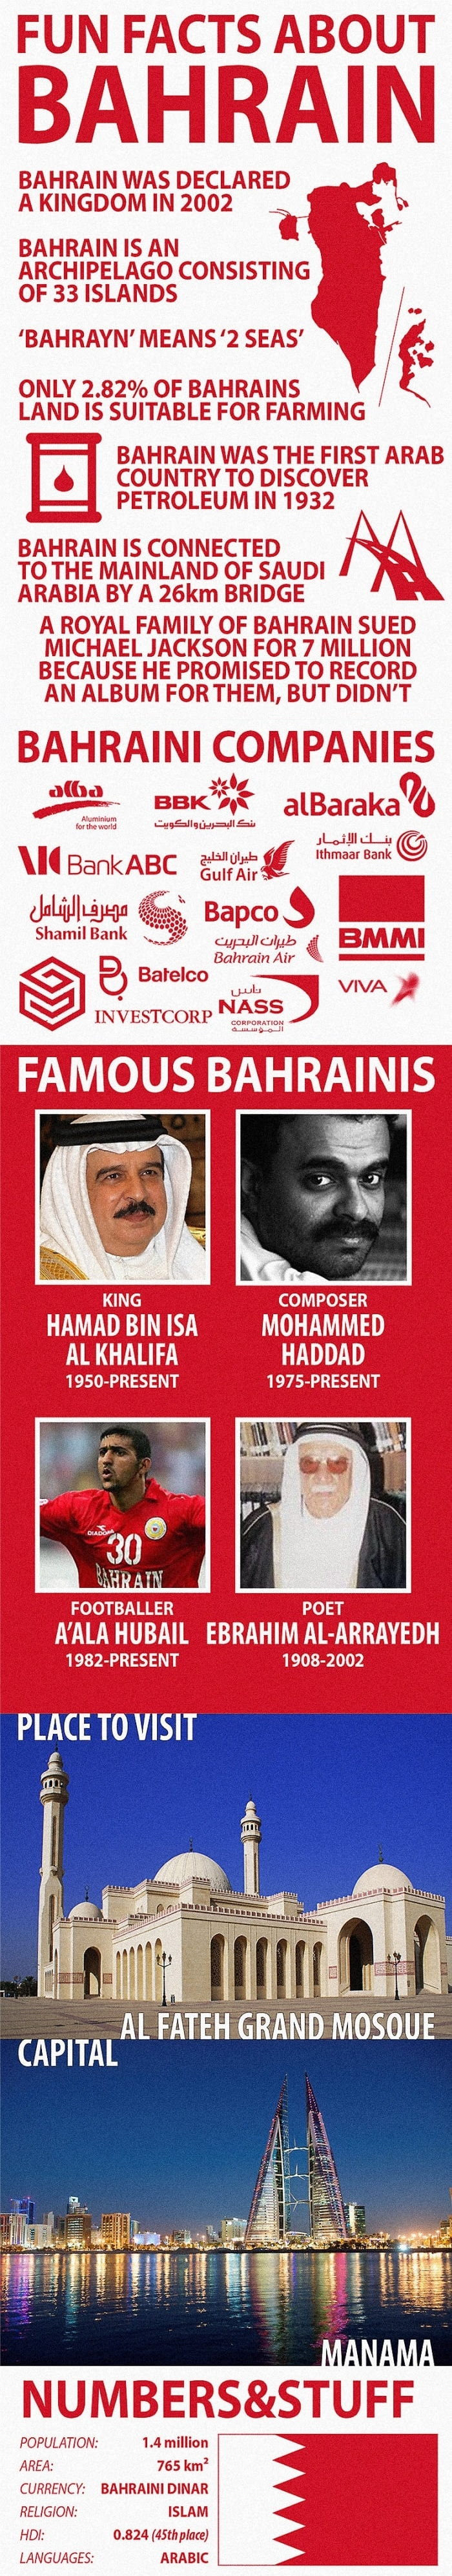 Facts about Bahrain